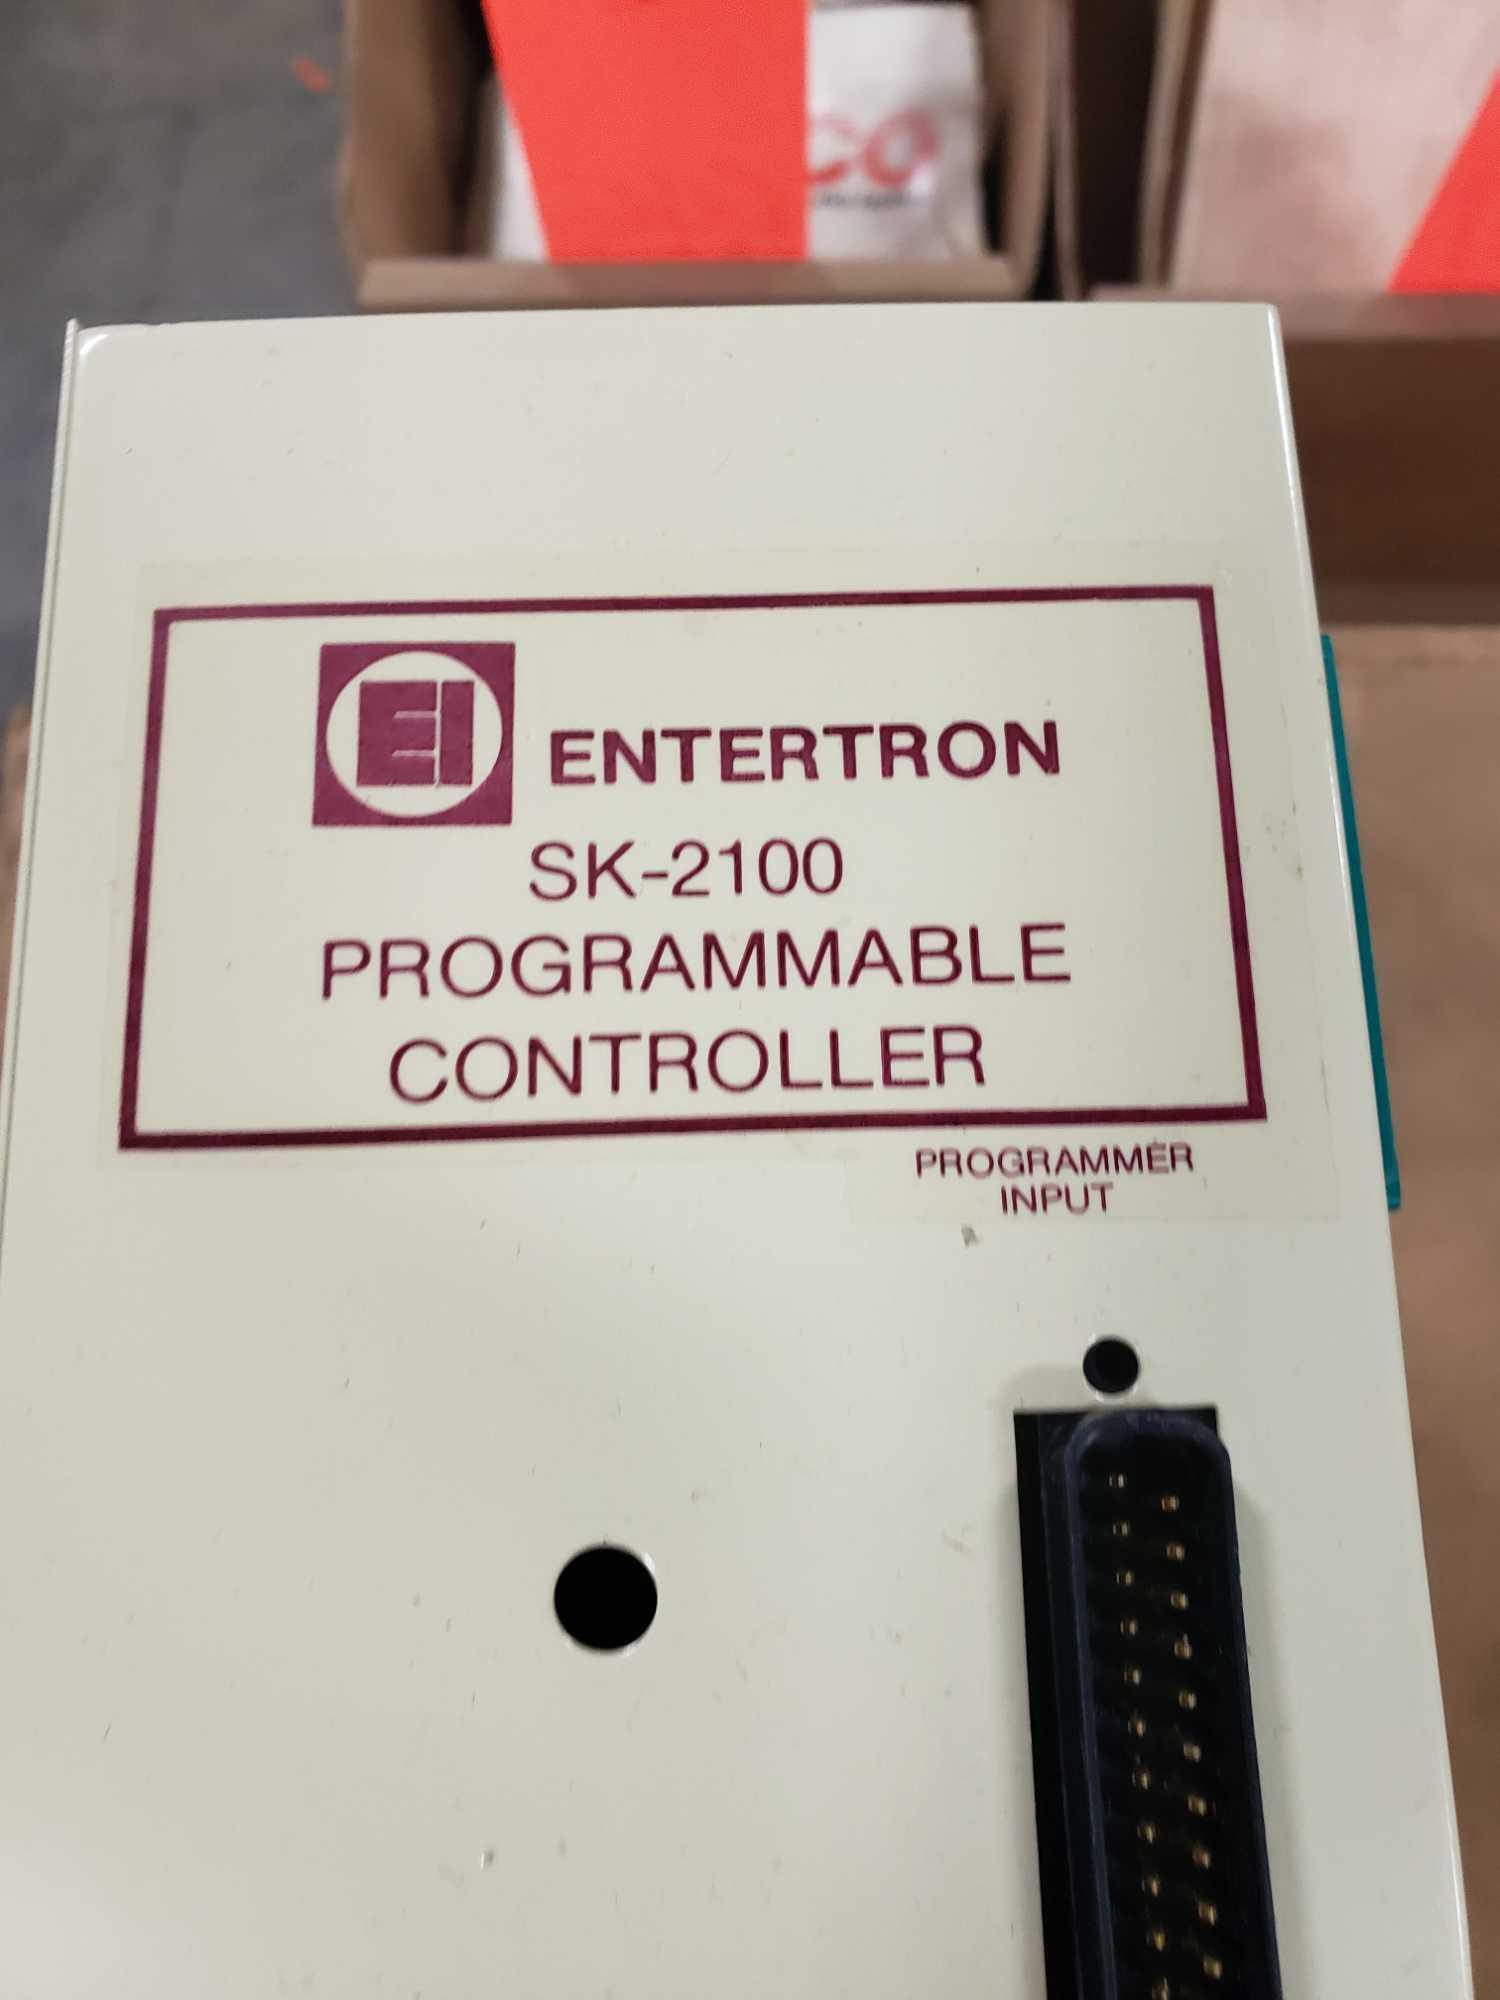 Entertron programmable controller model SK-2100. New in box. - Image 2 of 2